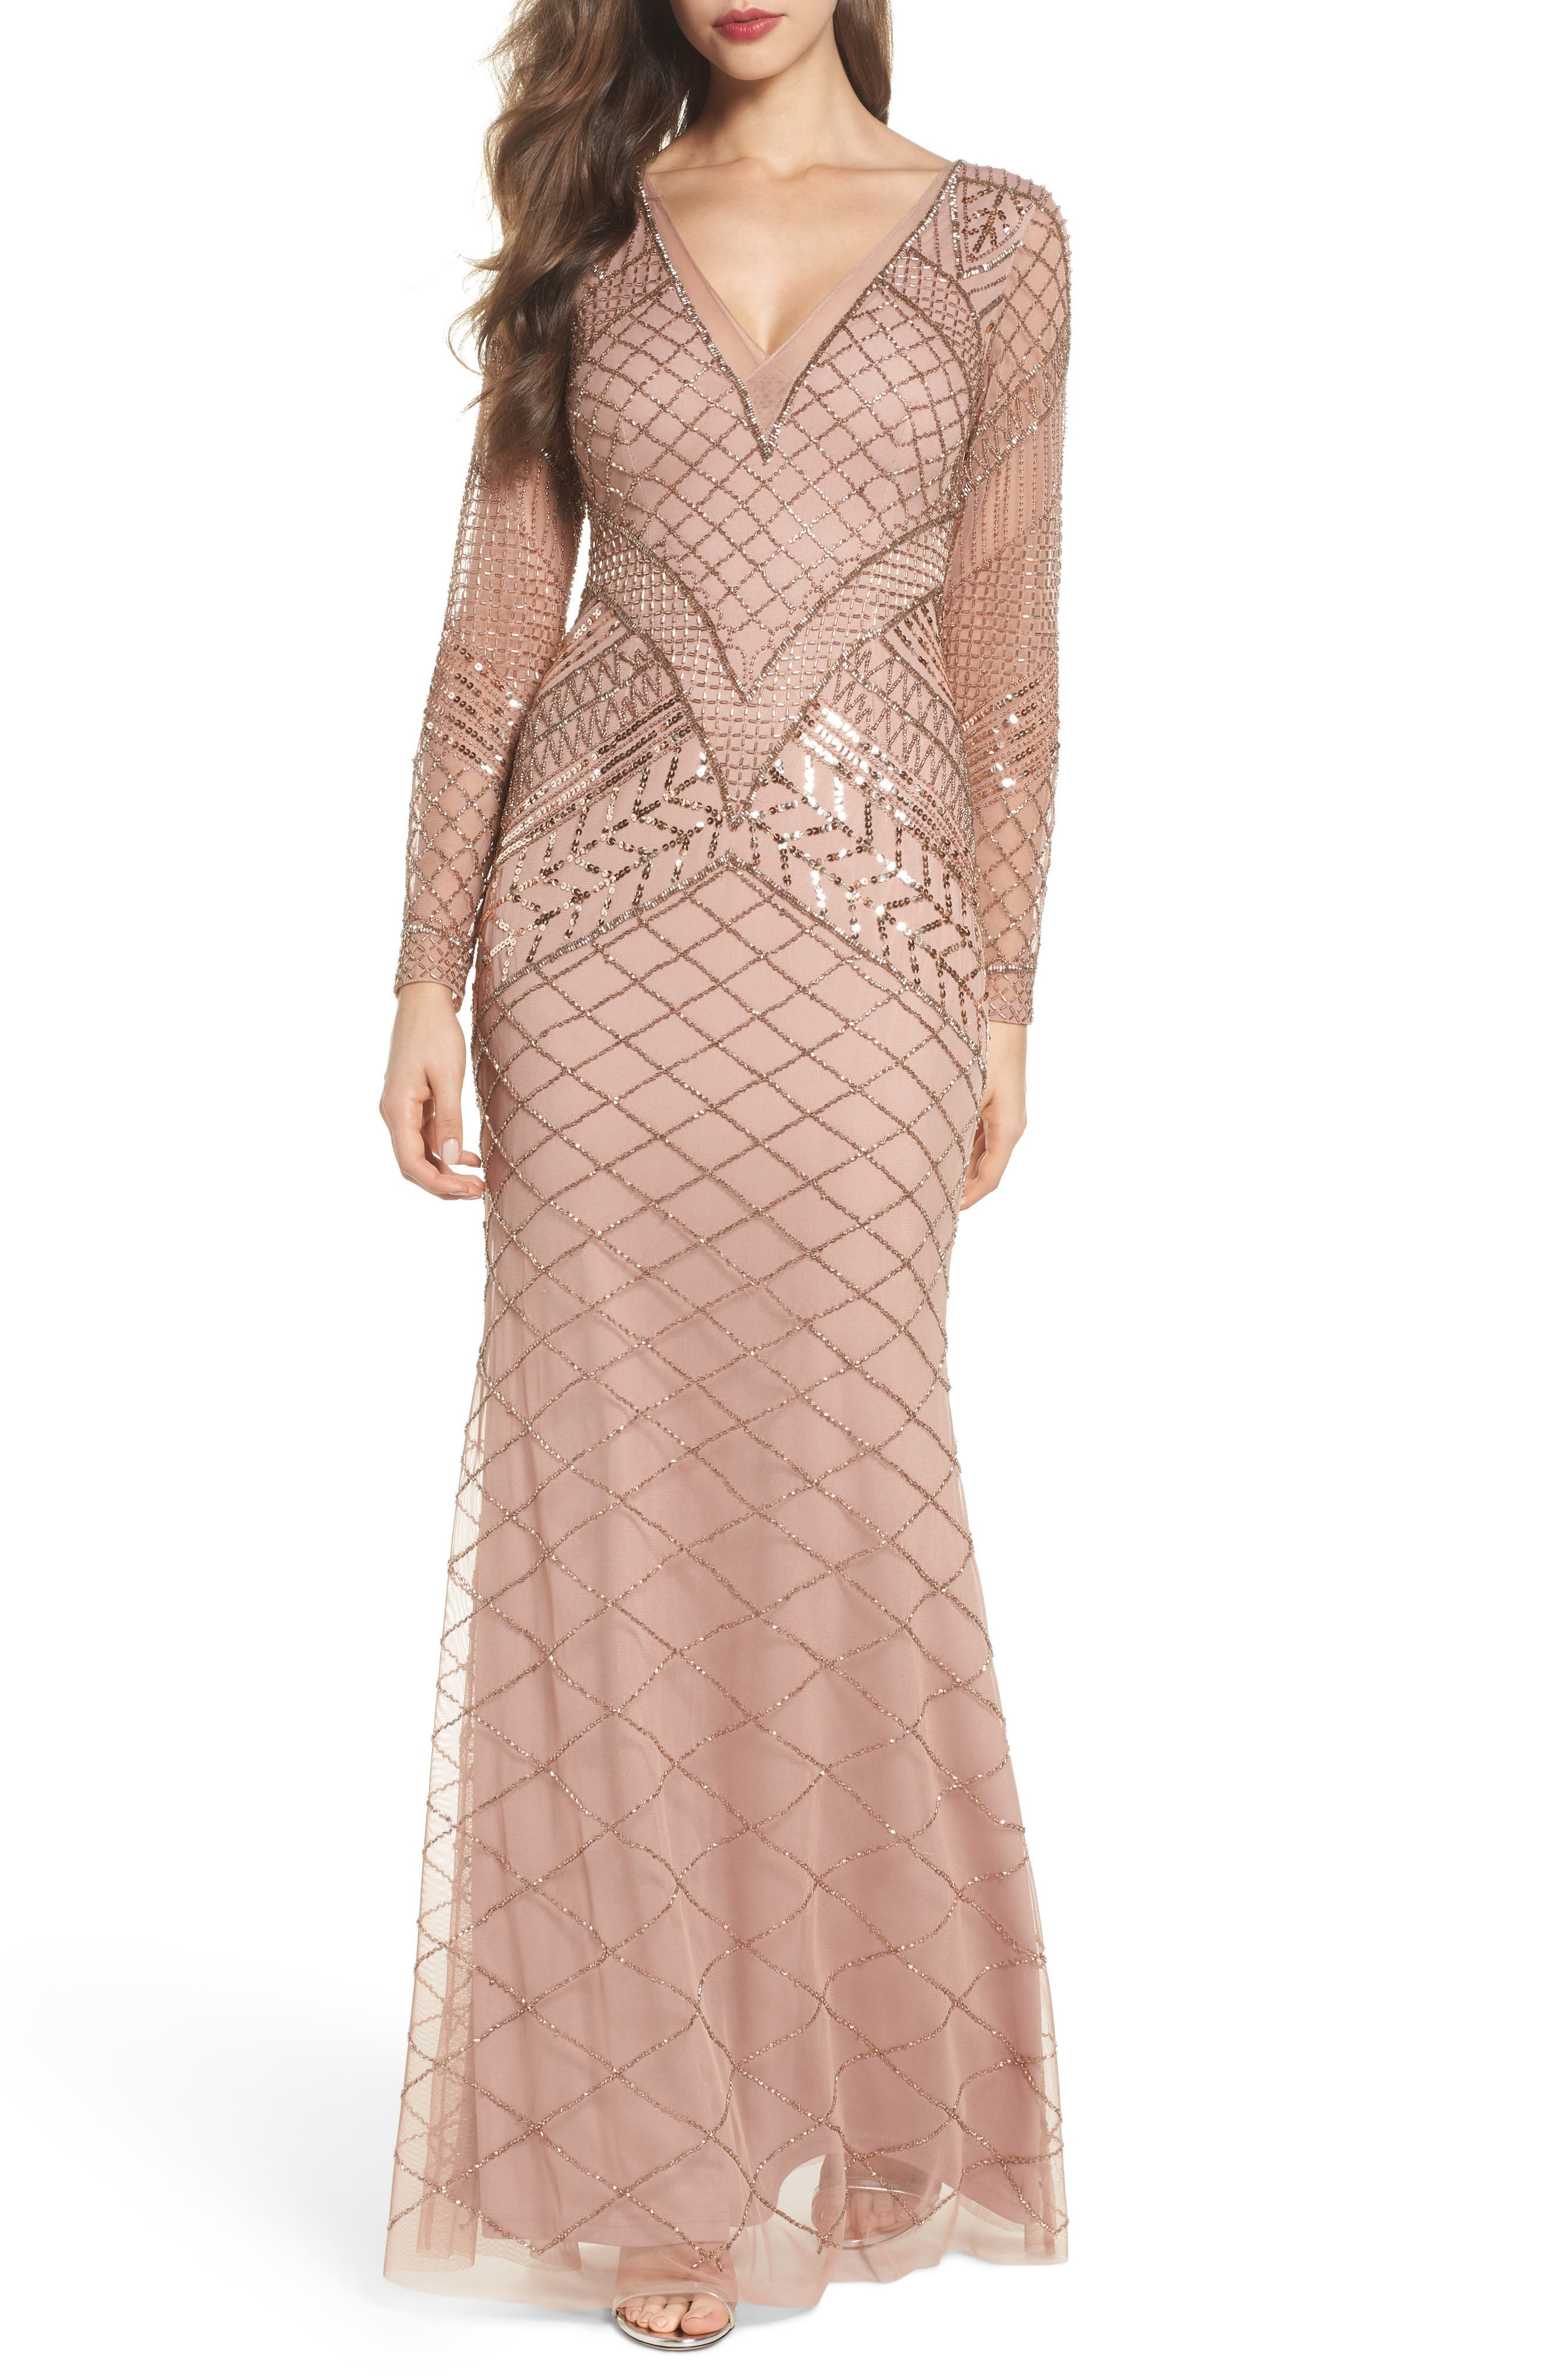 Main Image - Adrianna Papell Embellished Mermaid Gown